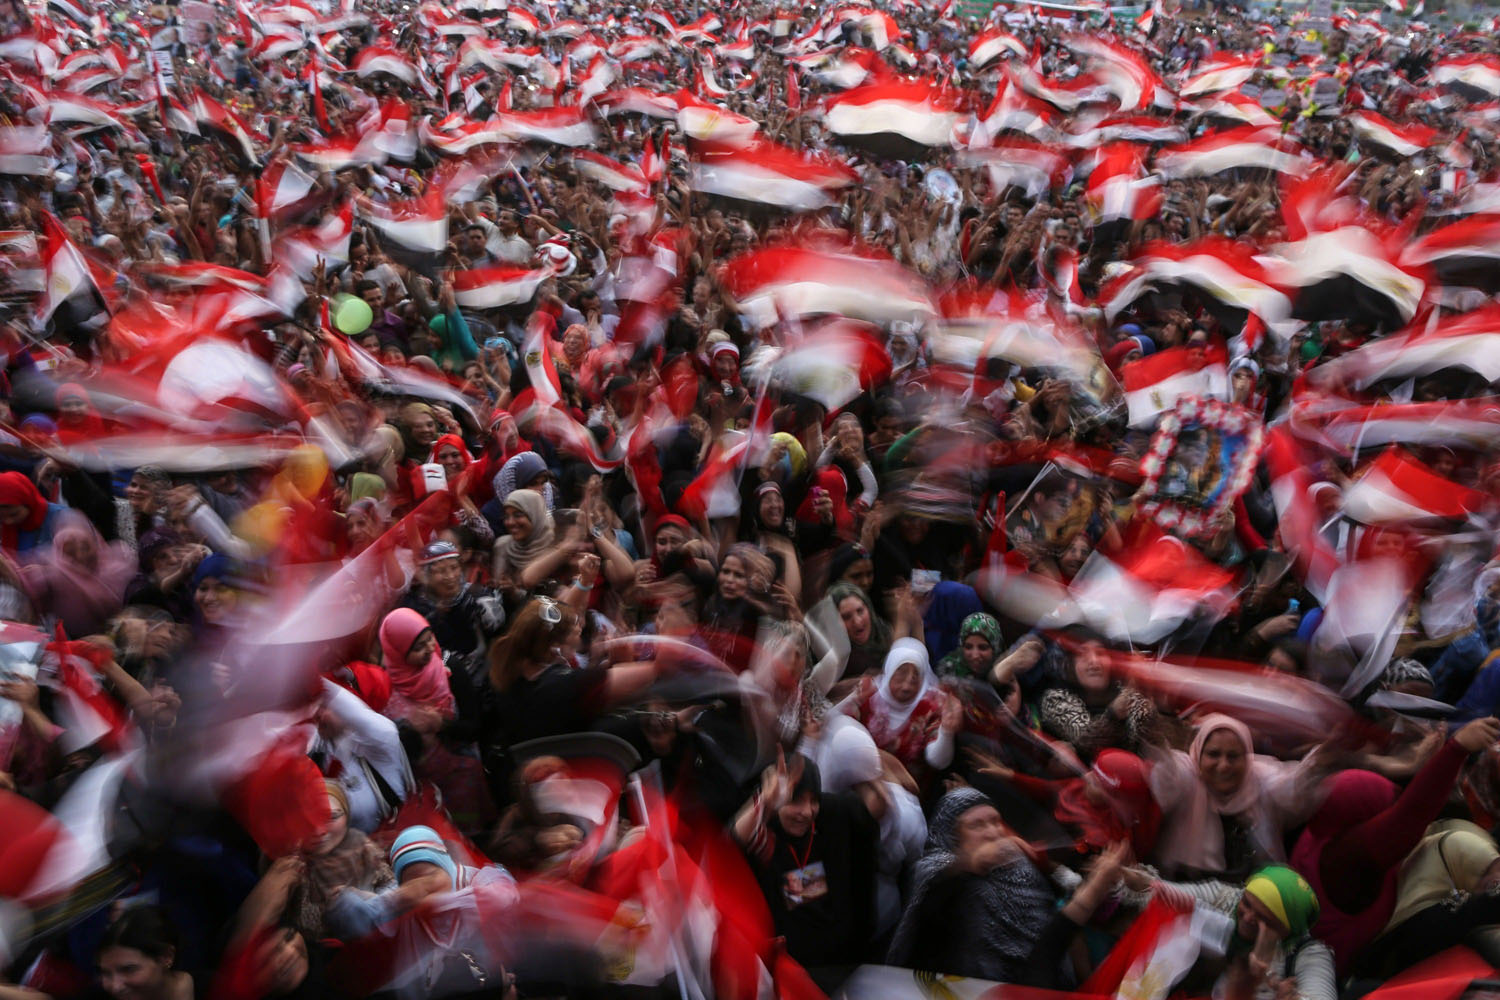 June 3, 2014. Egyptians wave national flags as they celebrate in Cairo's Tahrir Square after ex-army chief Abdel Fattah al-Sisi won 96.9 percent of votes in Egypt's presidential election.